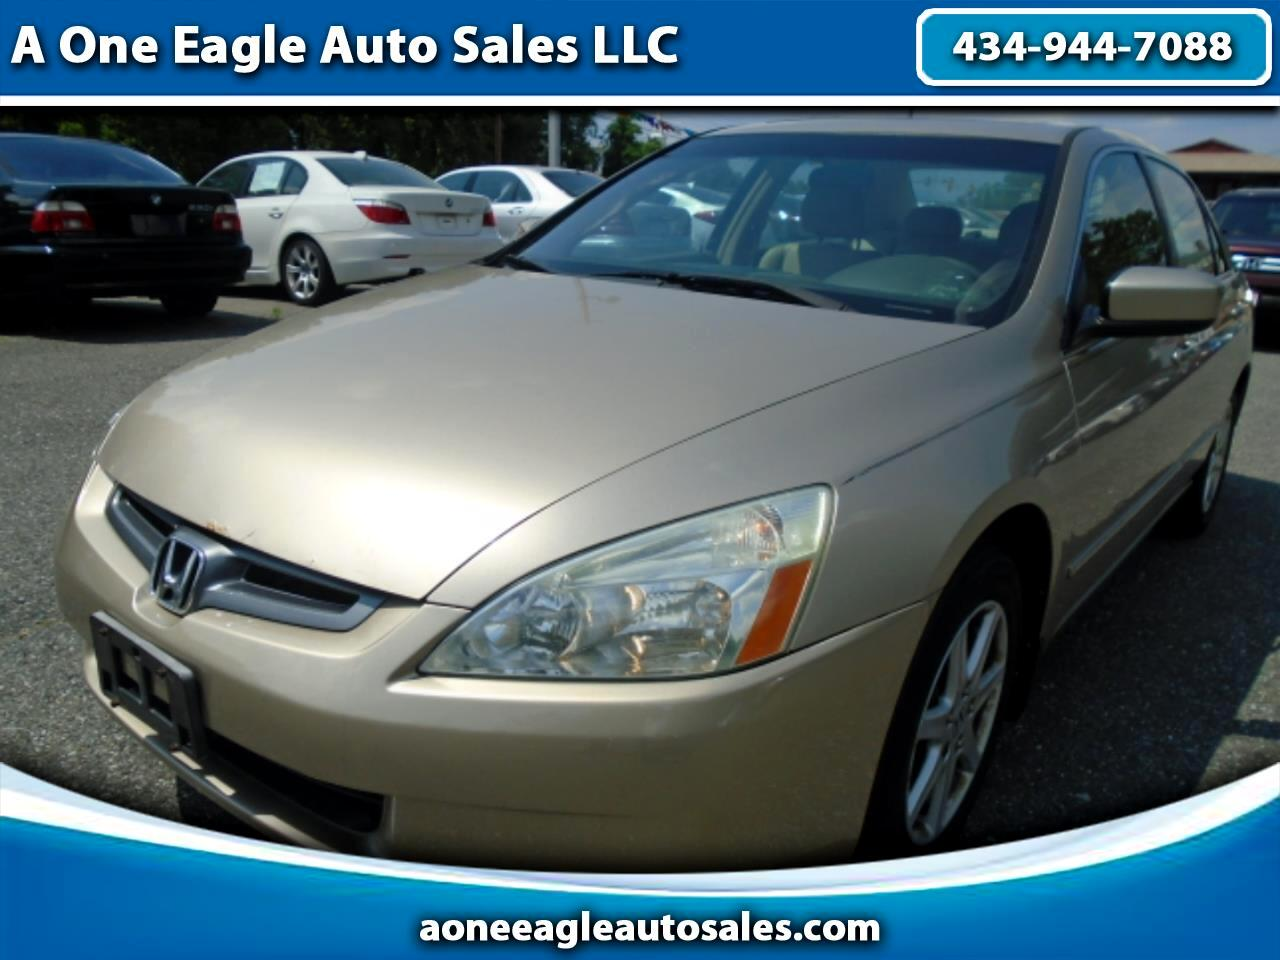 Honda Accord EX V-6 Sedan AT with XM Radio 2004